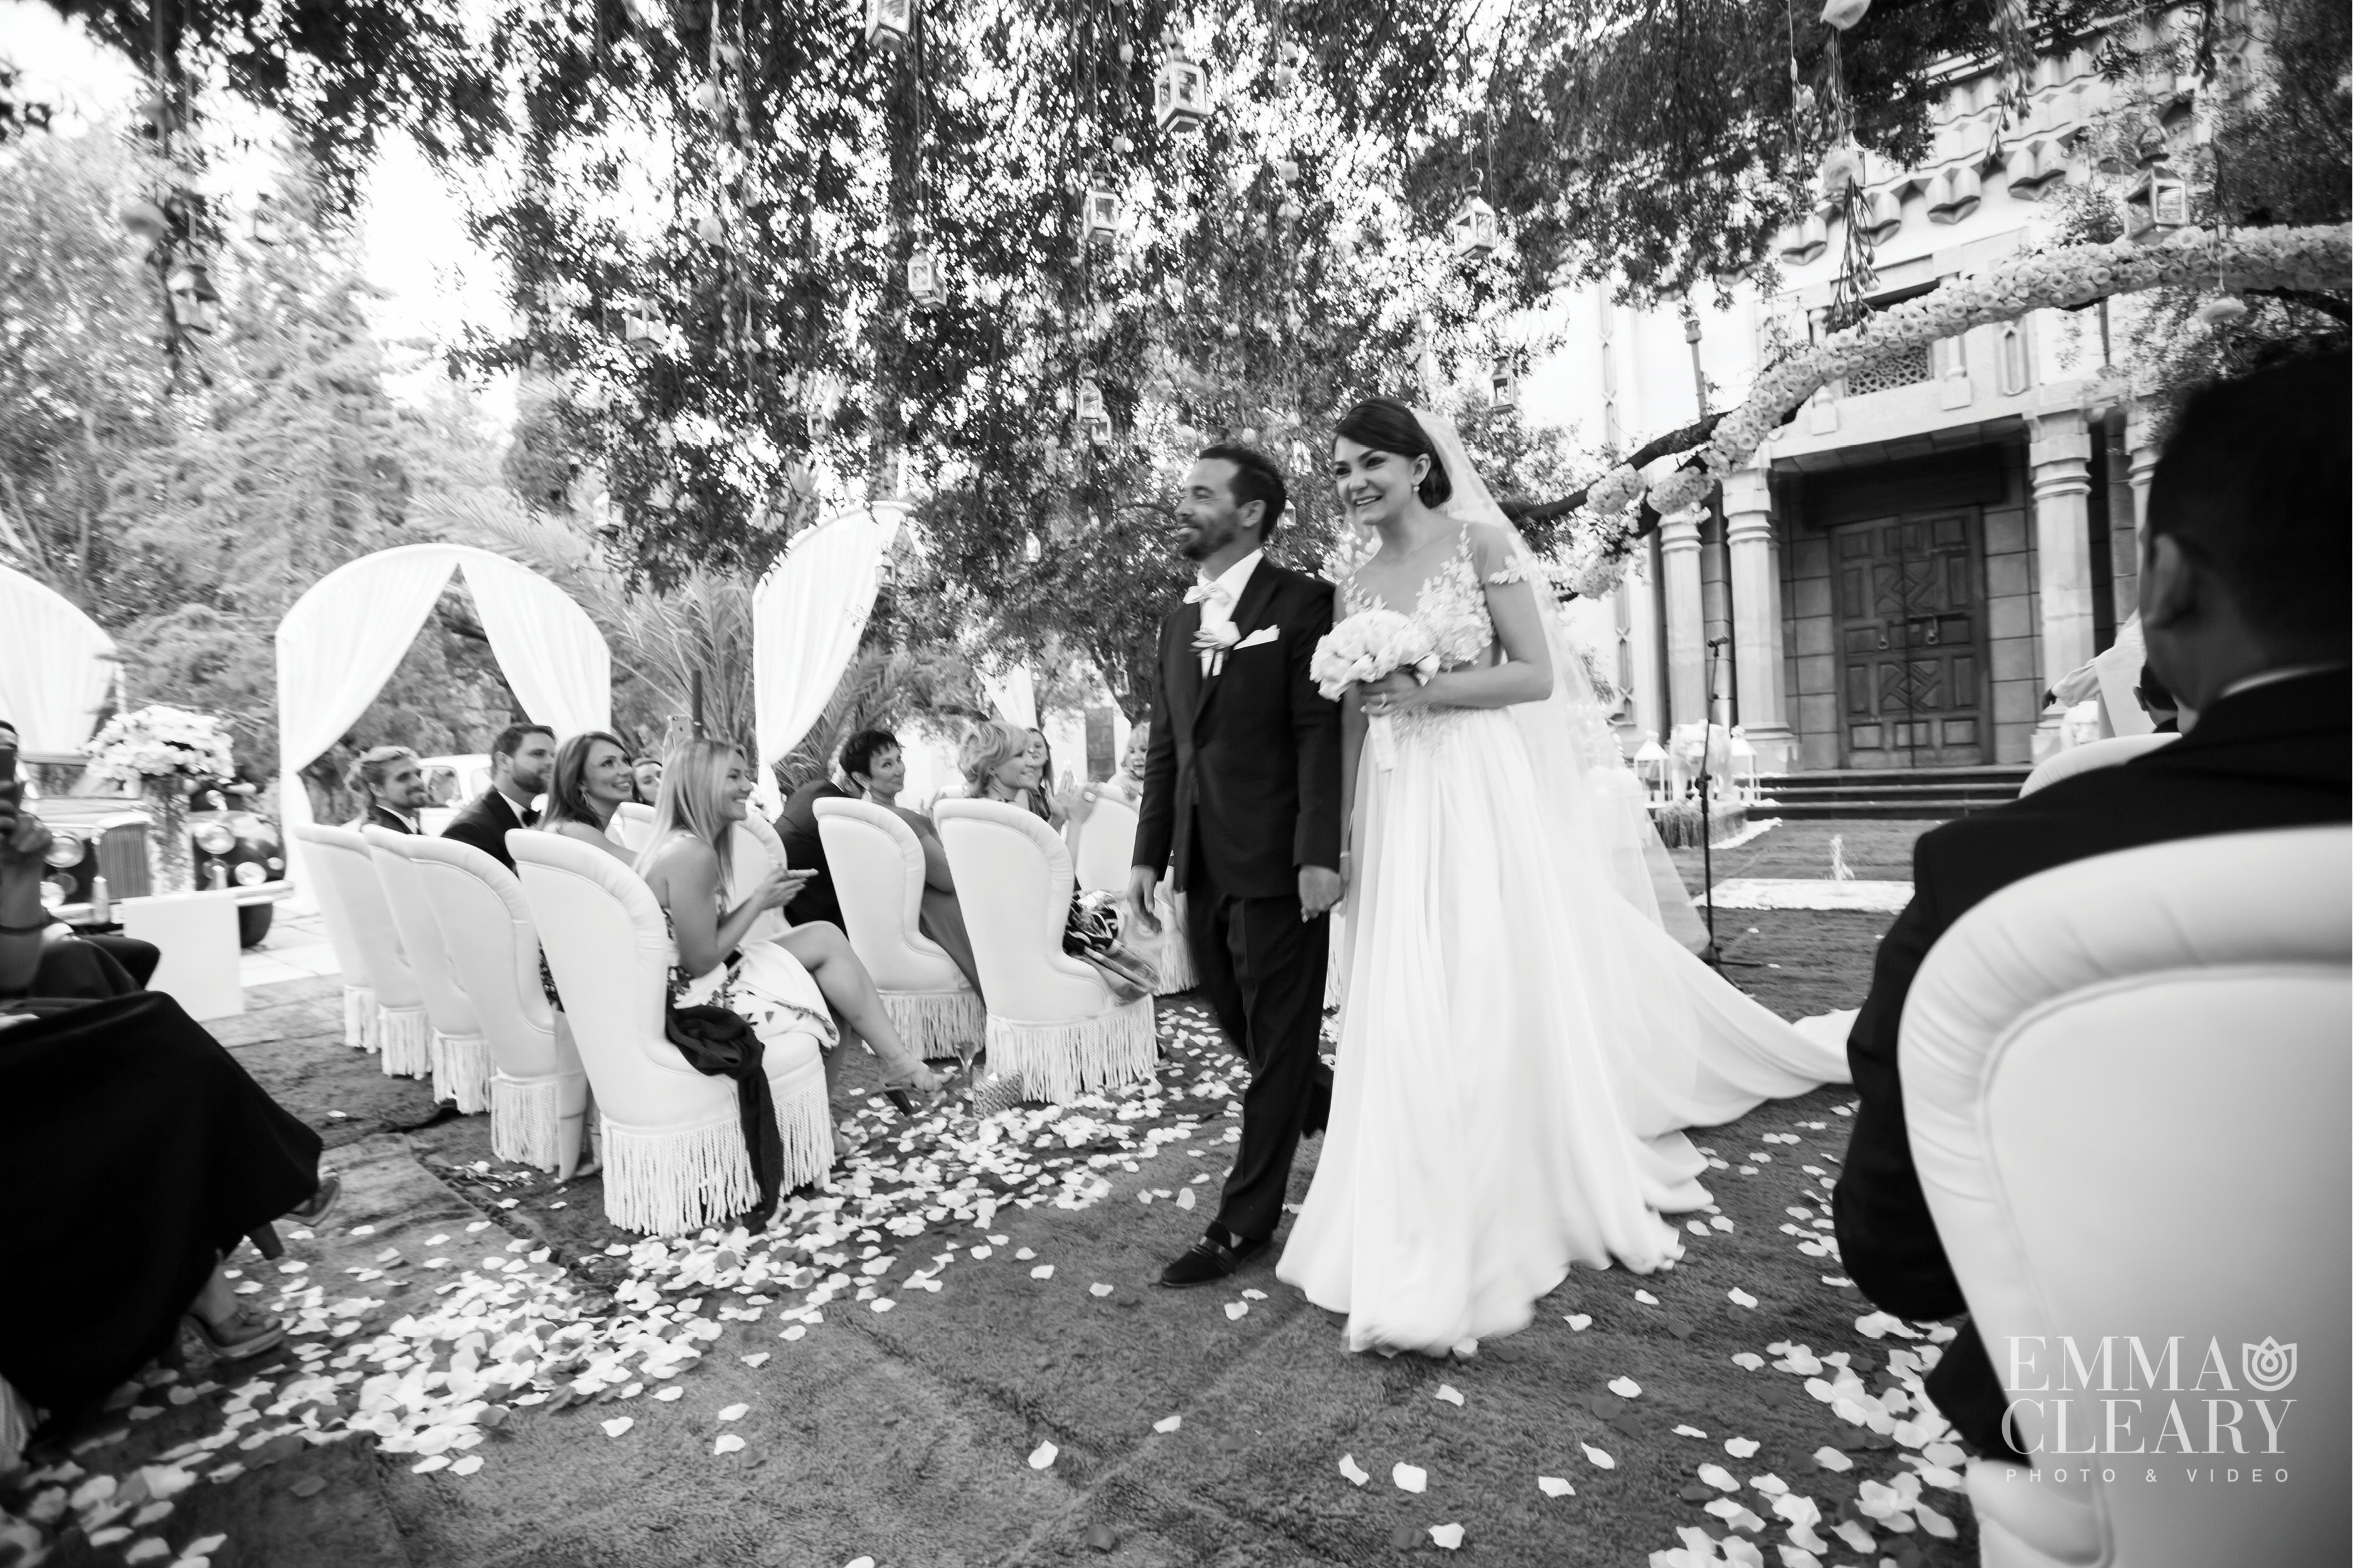 Emma_cleary_photography Destination Wedding Morrocco14